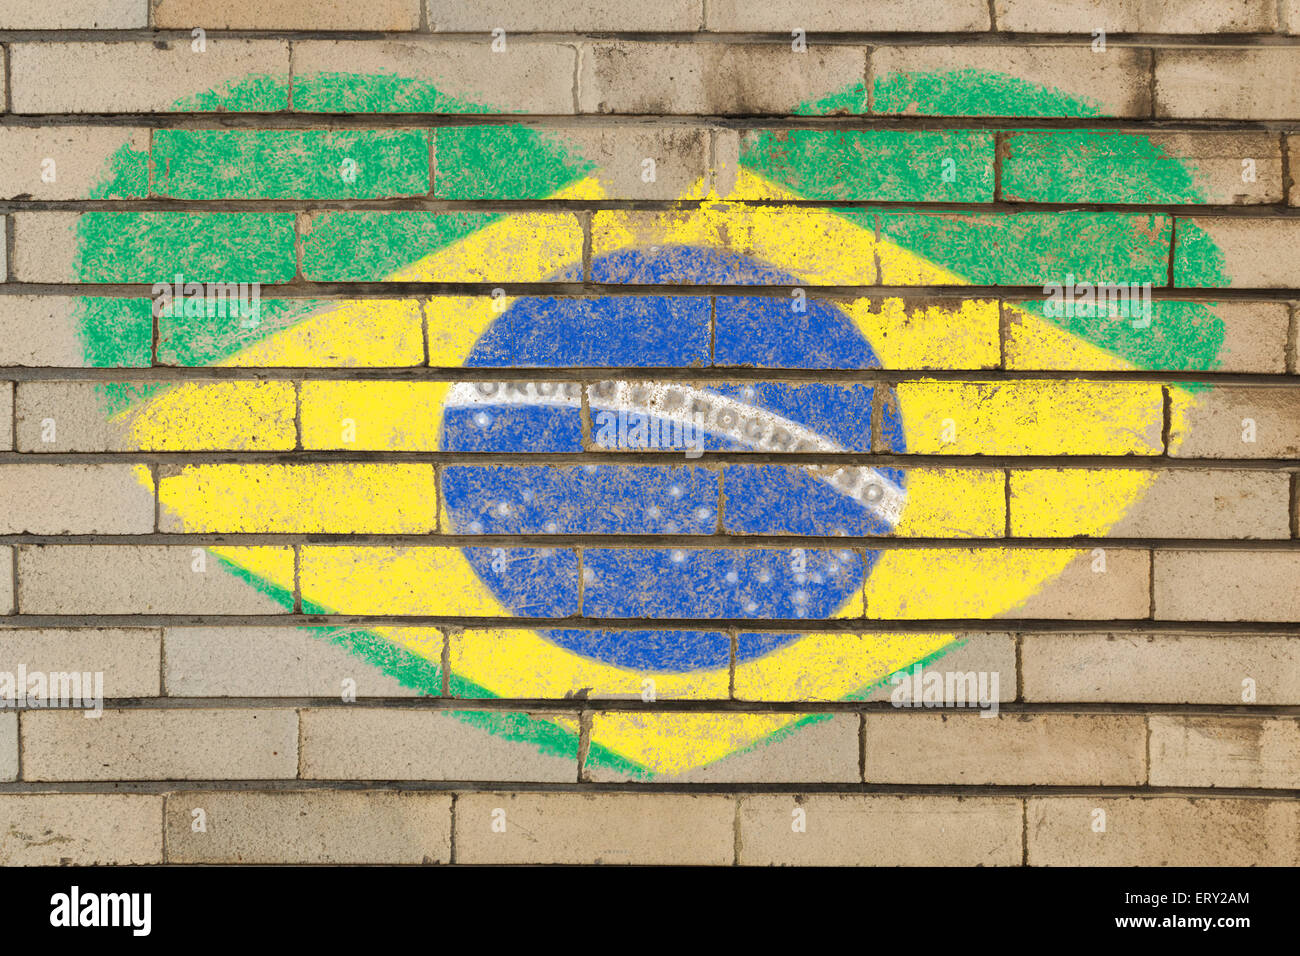 Brazil Wall Grungy Old Brick Stock Photos & Brazil Wall Grungy Old ...